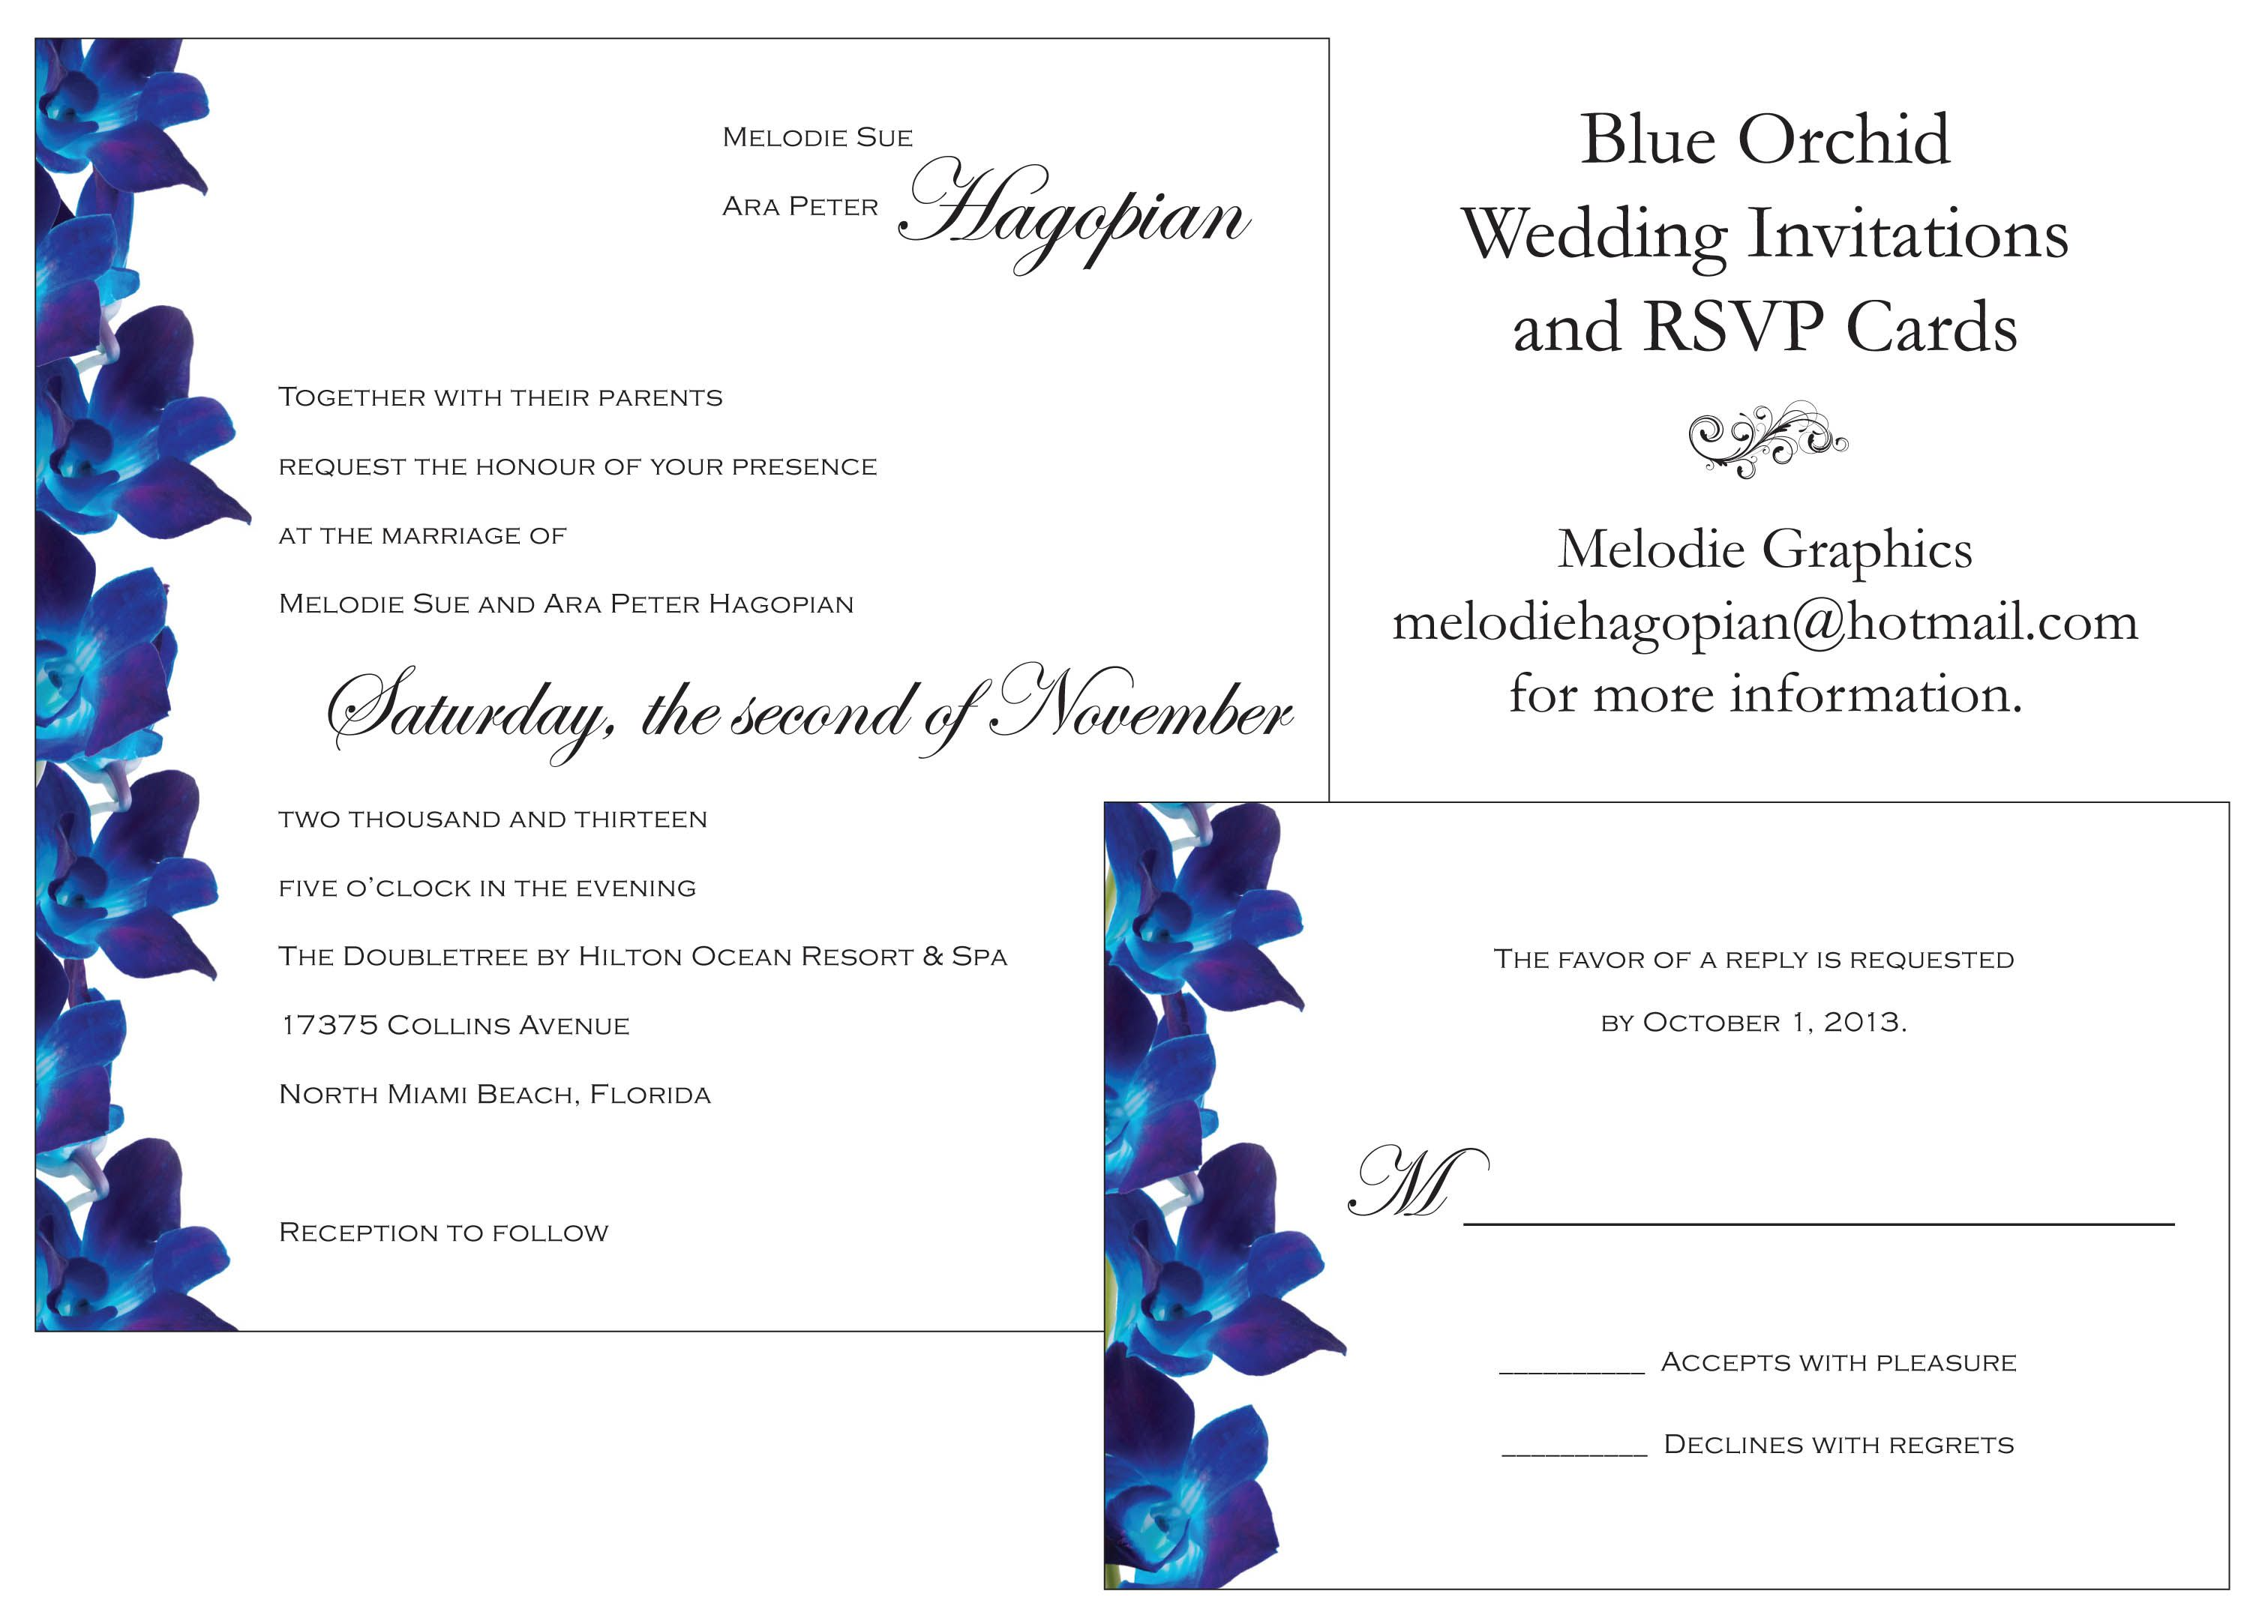 Blue Orchid Wedding Invitations & RSVP cards. Melodie Graphics ...